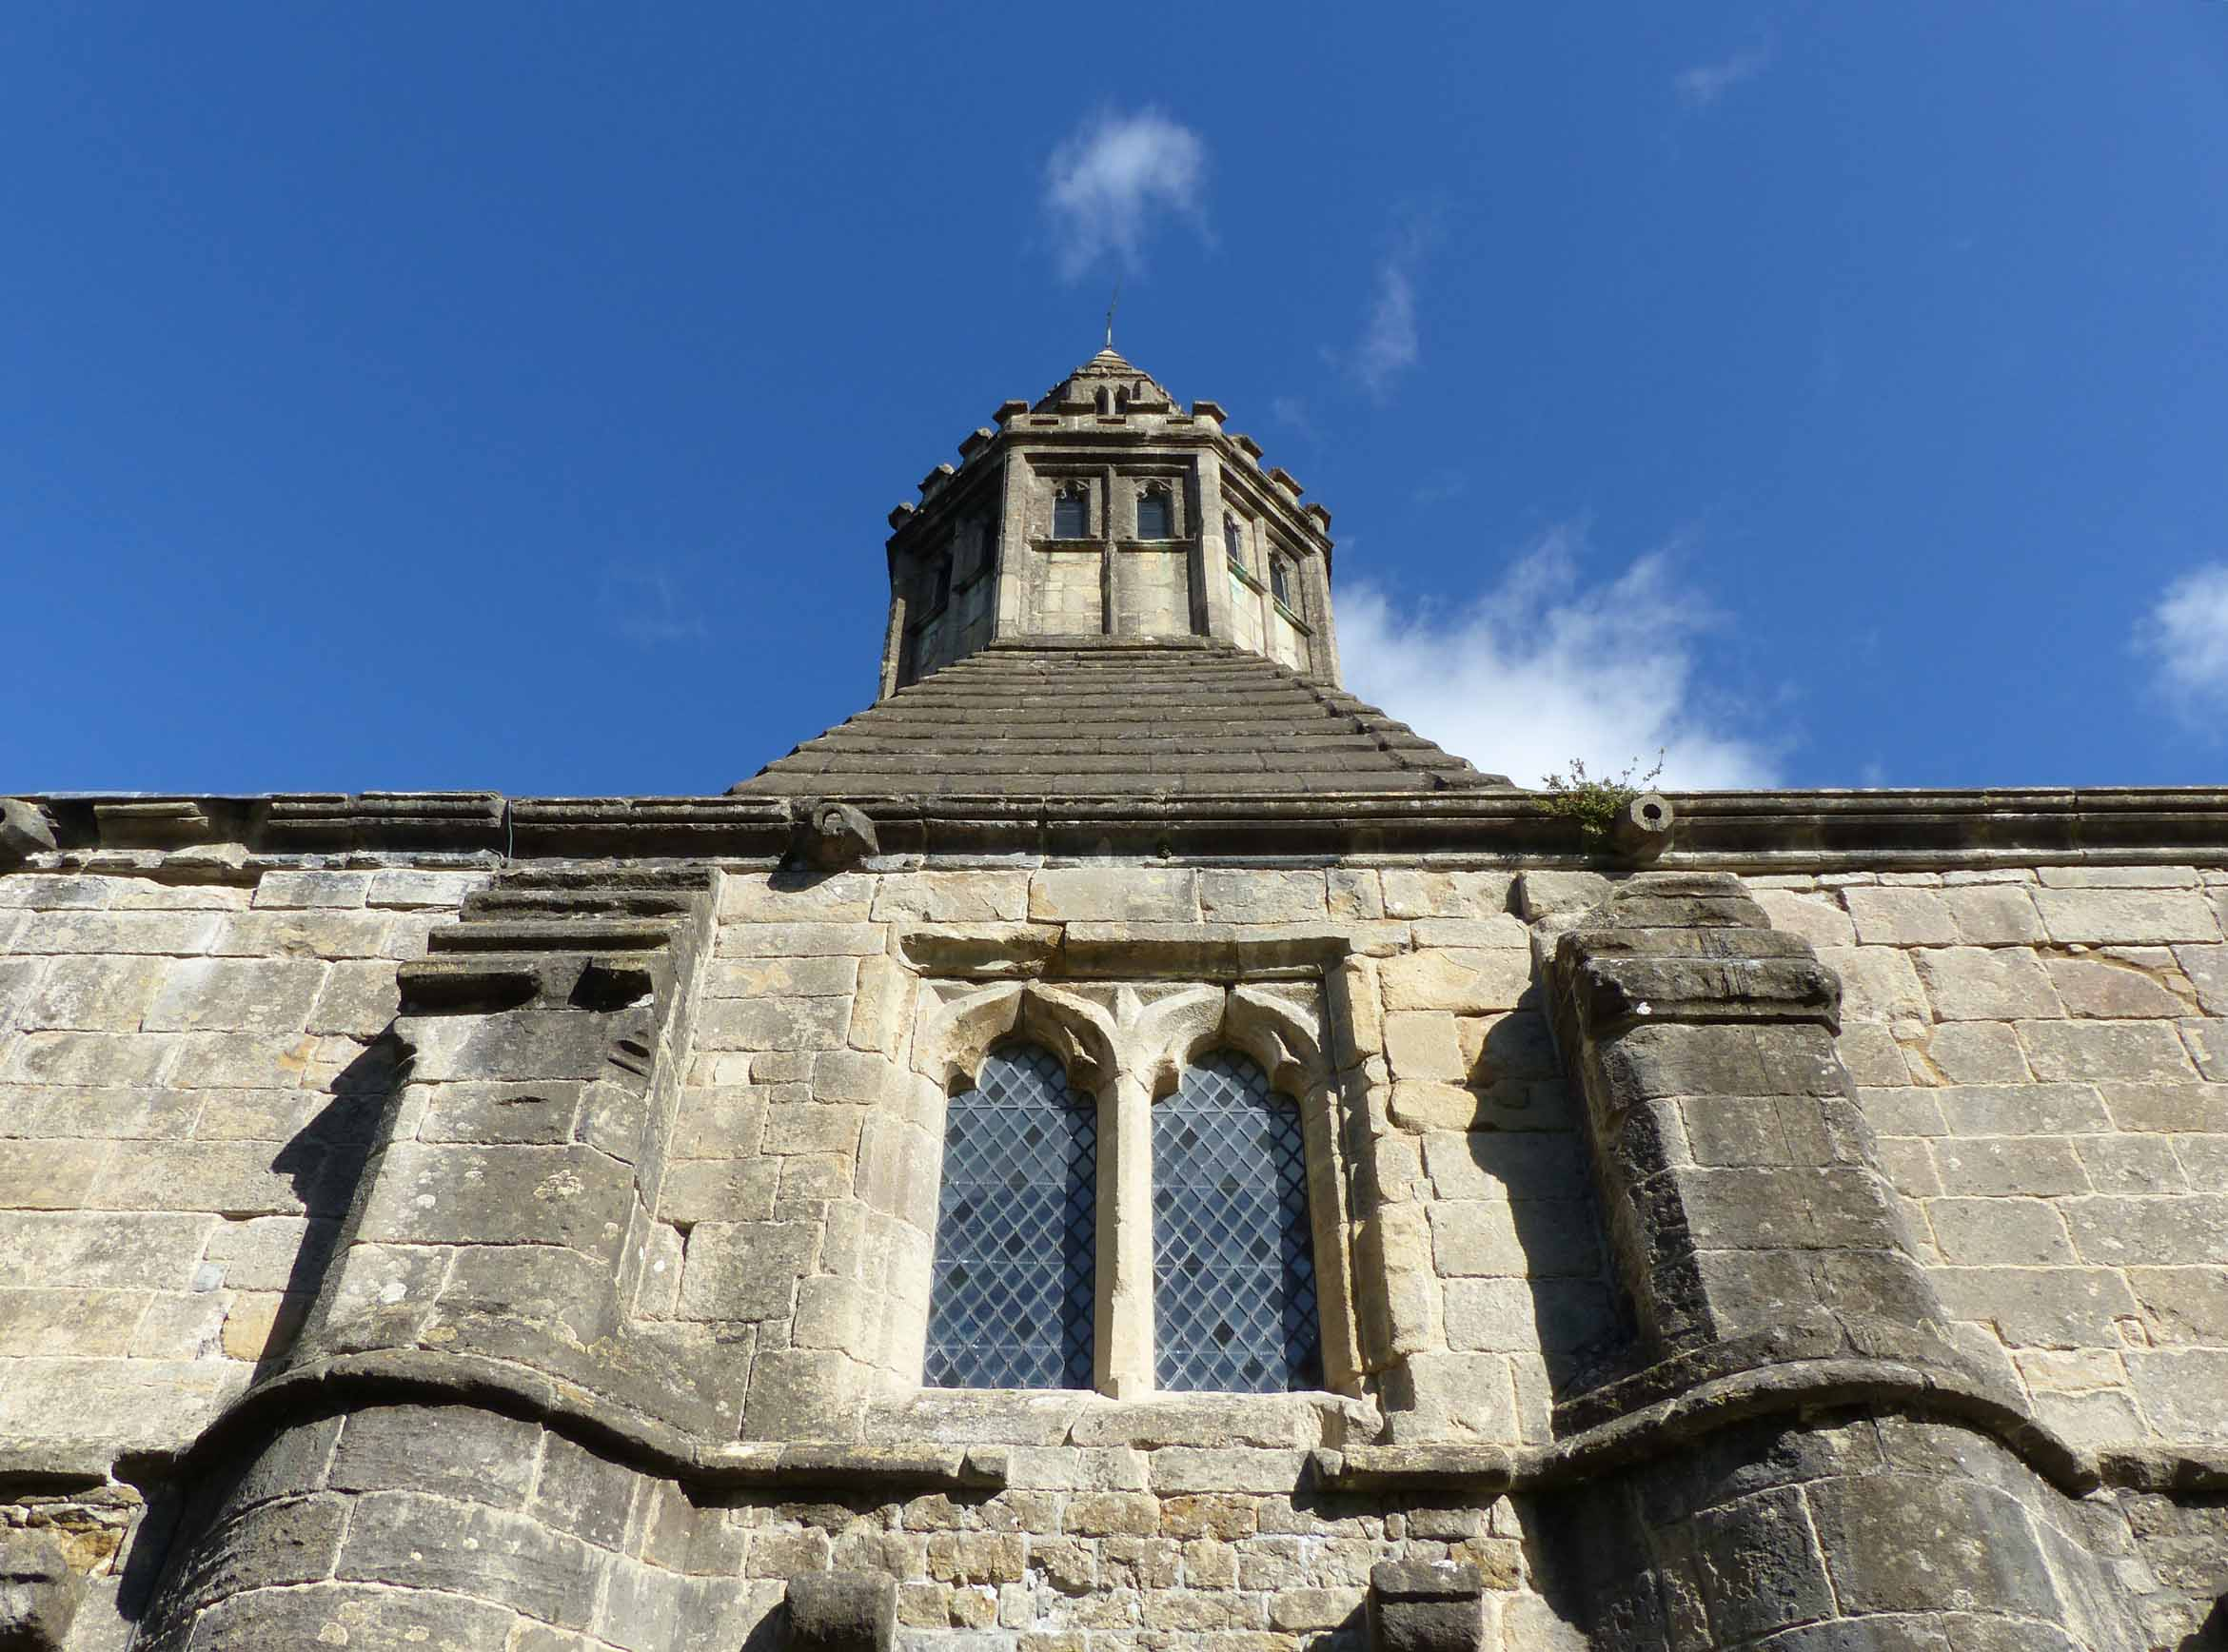 Looking up at a stone building